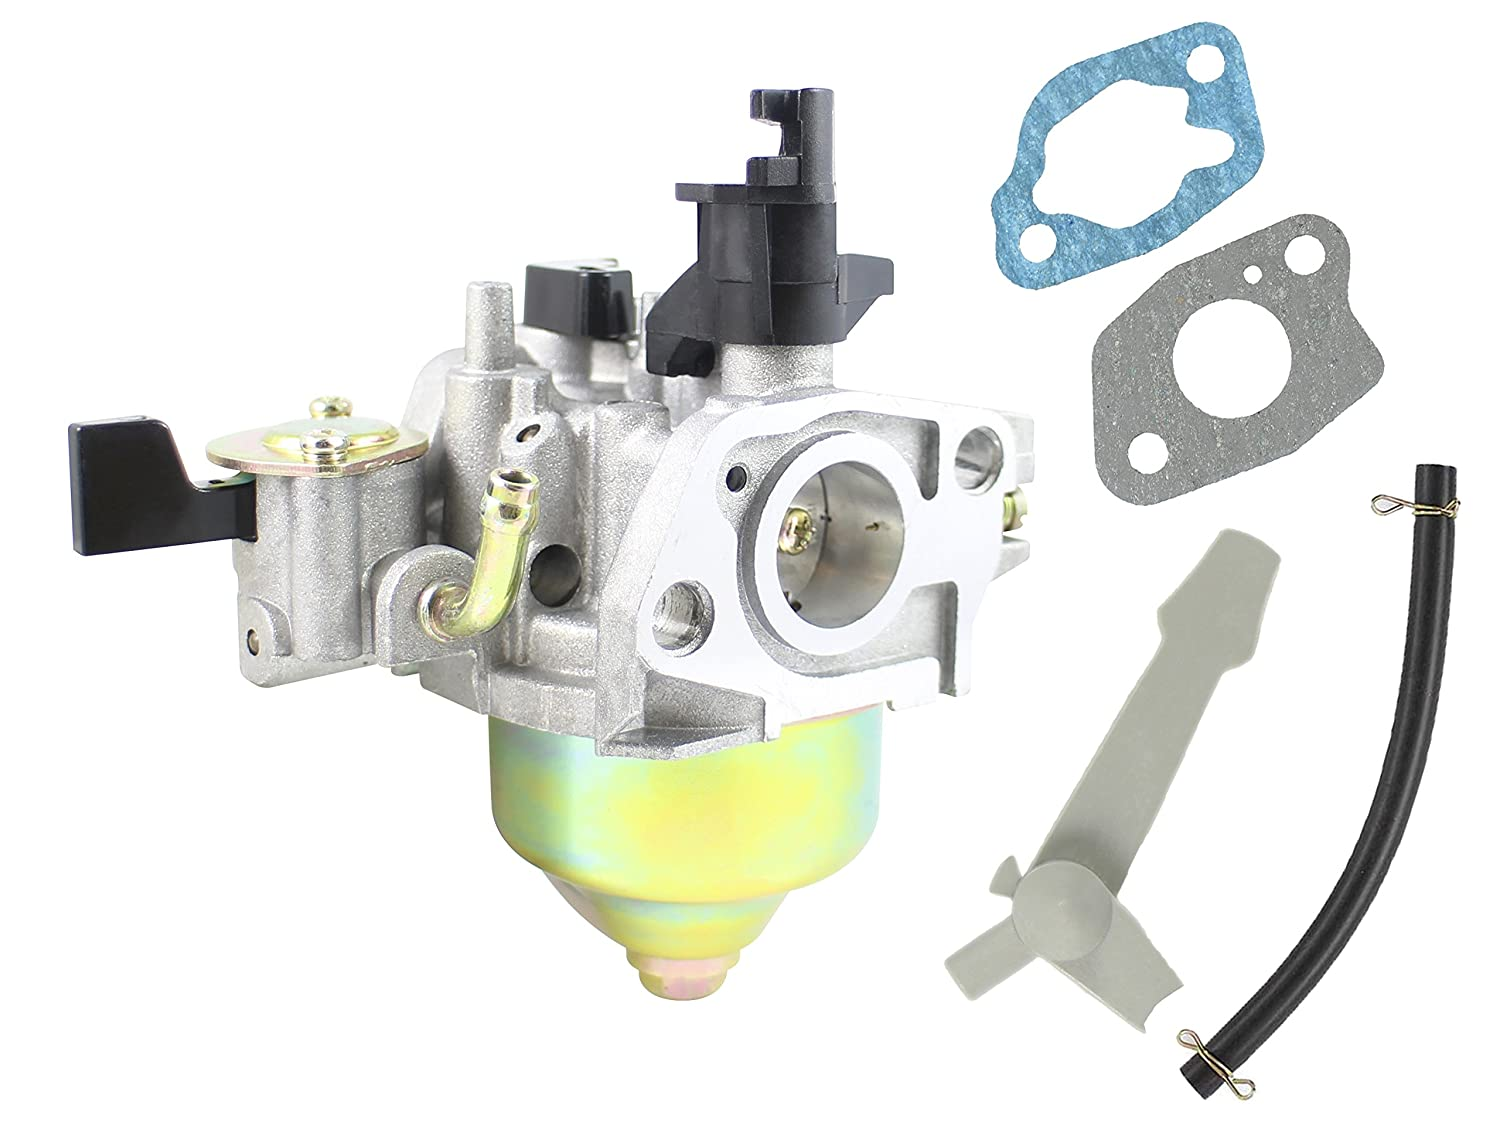 Pro Chaser 126 Carburetor for Generac Power 0059870 2500-3000 PSI Pressure Washer Part # 0J88870123 Replaces Briggs & Stratton 592236 Kohler 18-853-16-S SH265 Southland Part A202645 A201499